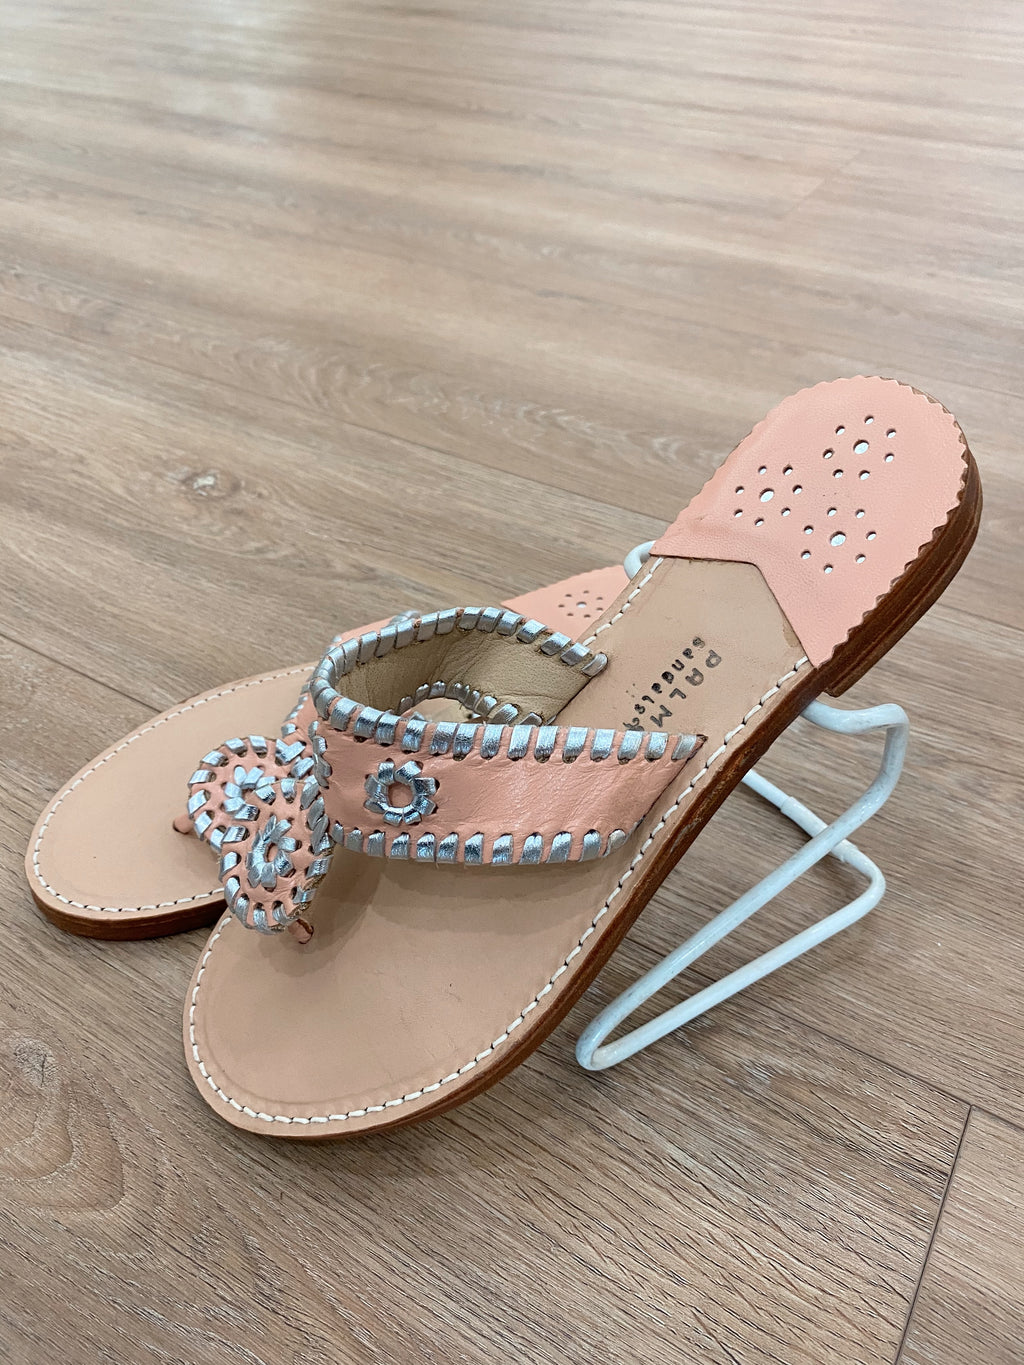 .Palm Beach Blush & Silver Sandals